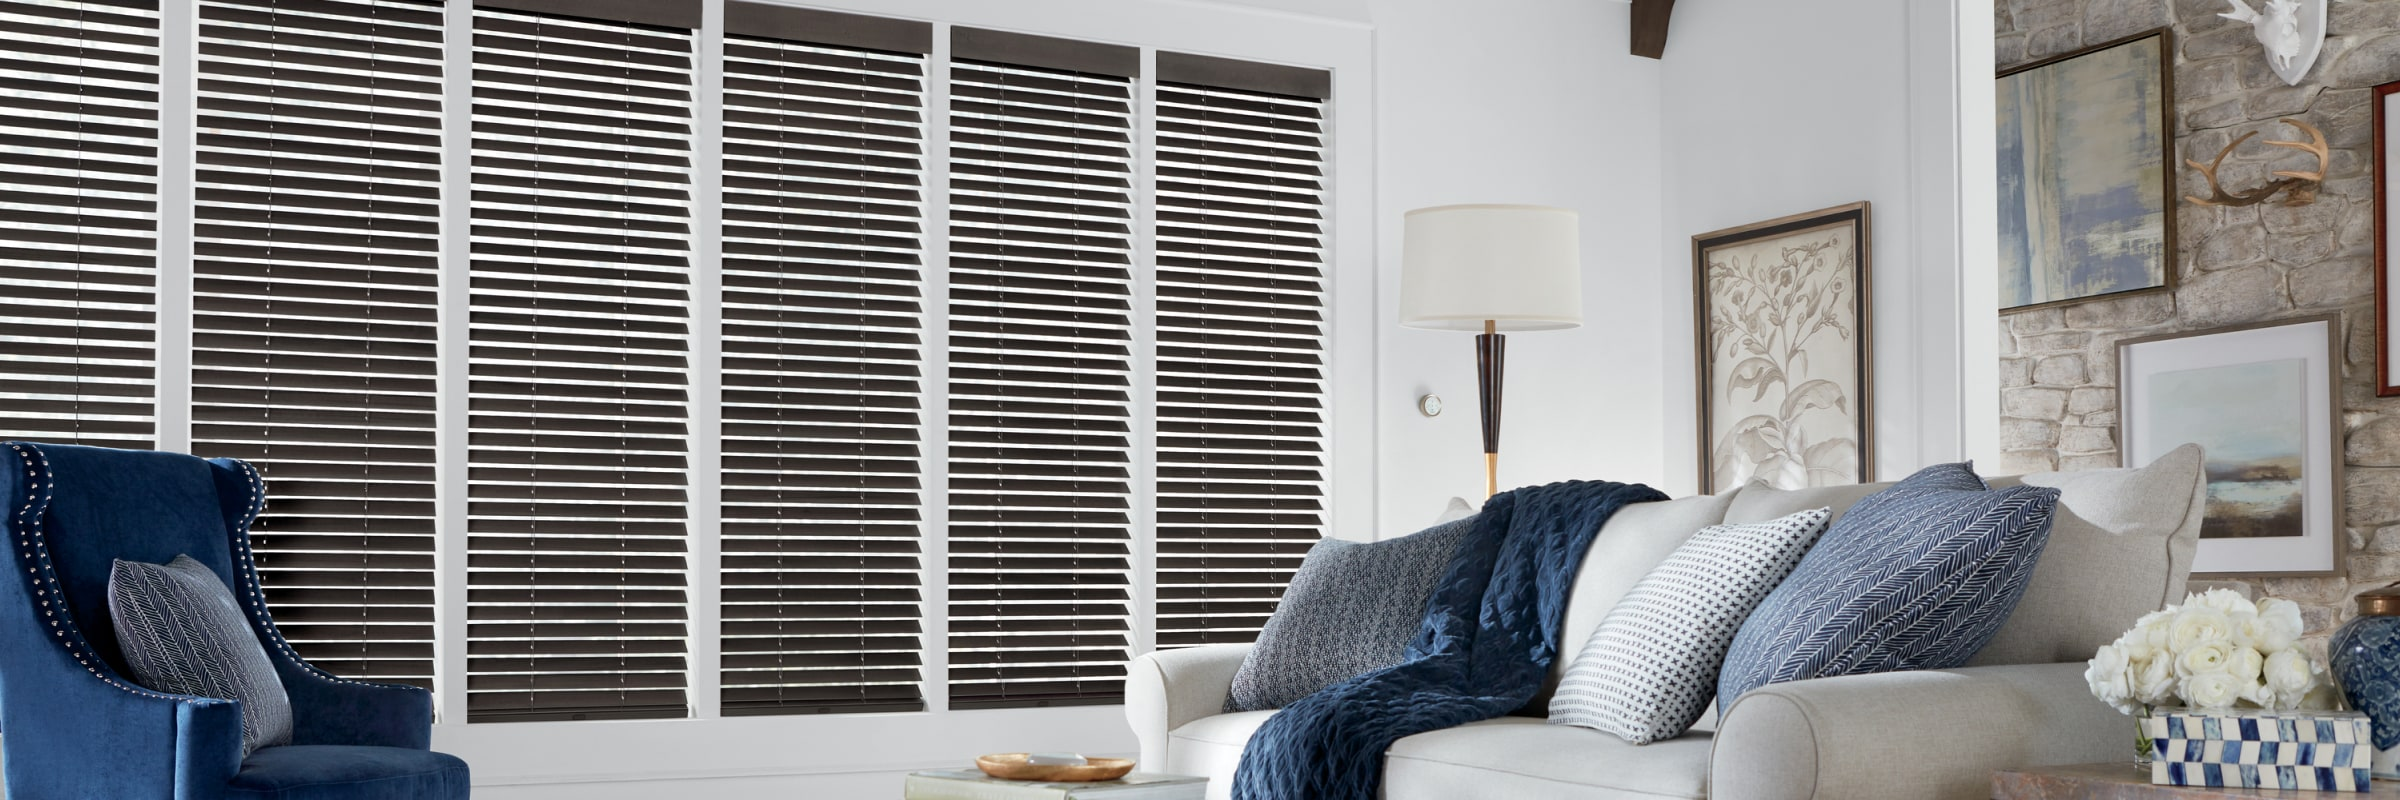 Wooden blinds in Premier Cosmopolitan - Parkland